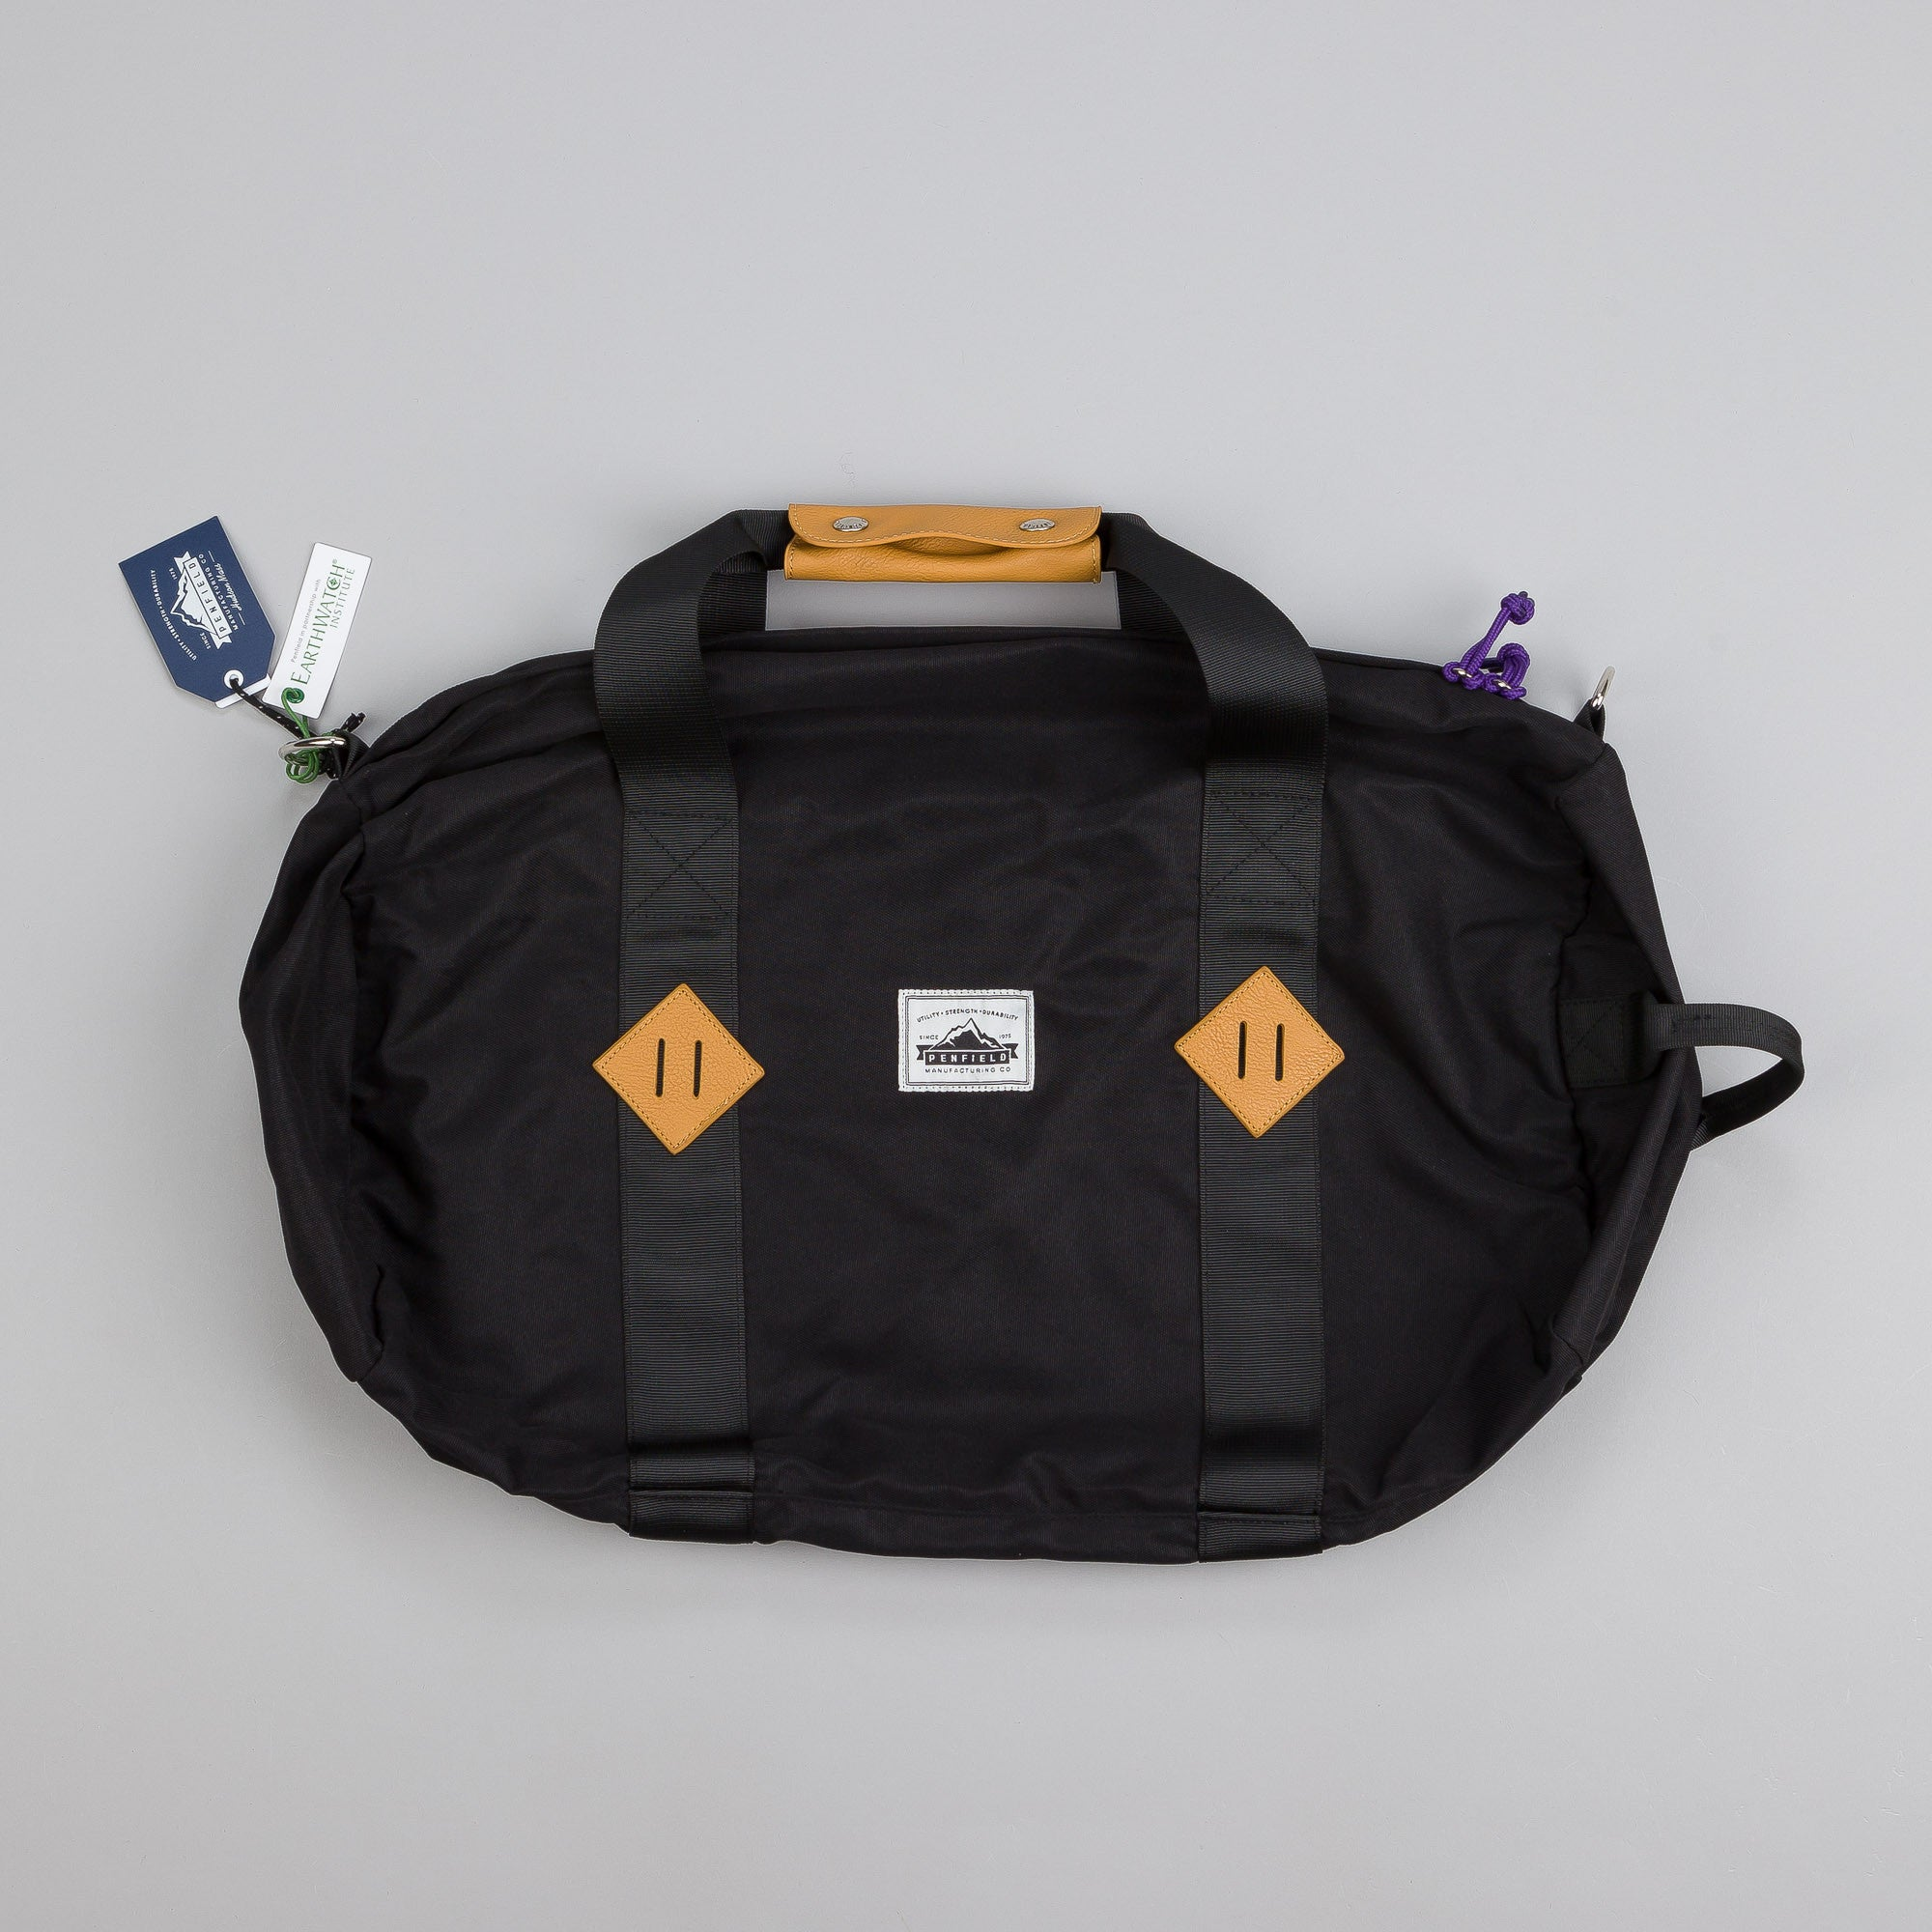 Penfield Irondale Roll Bag Black